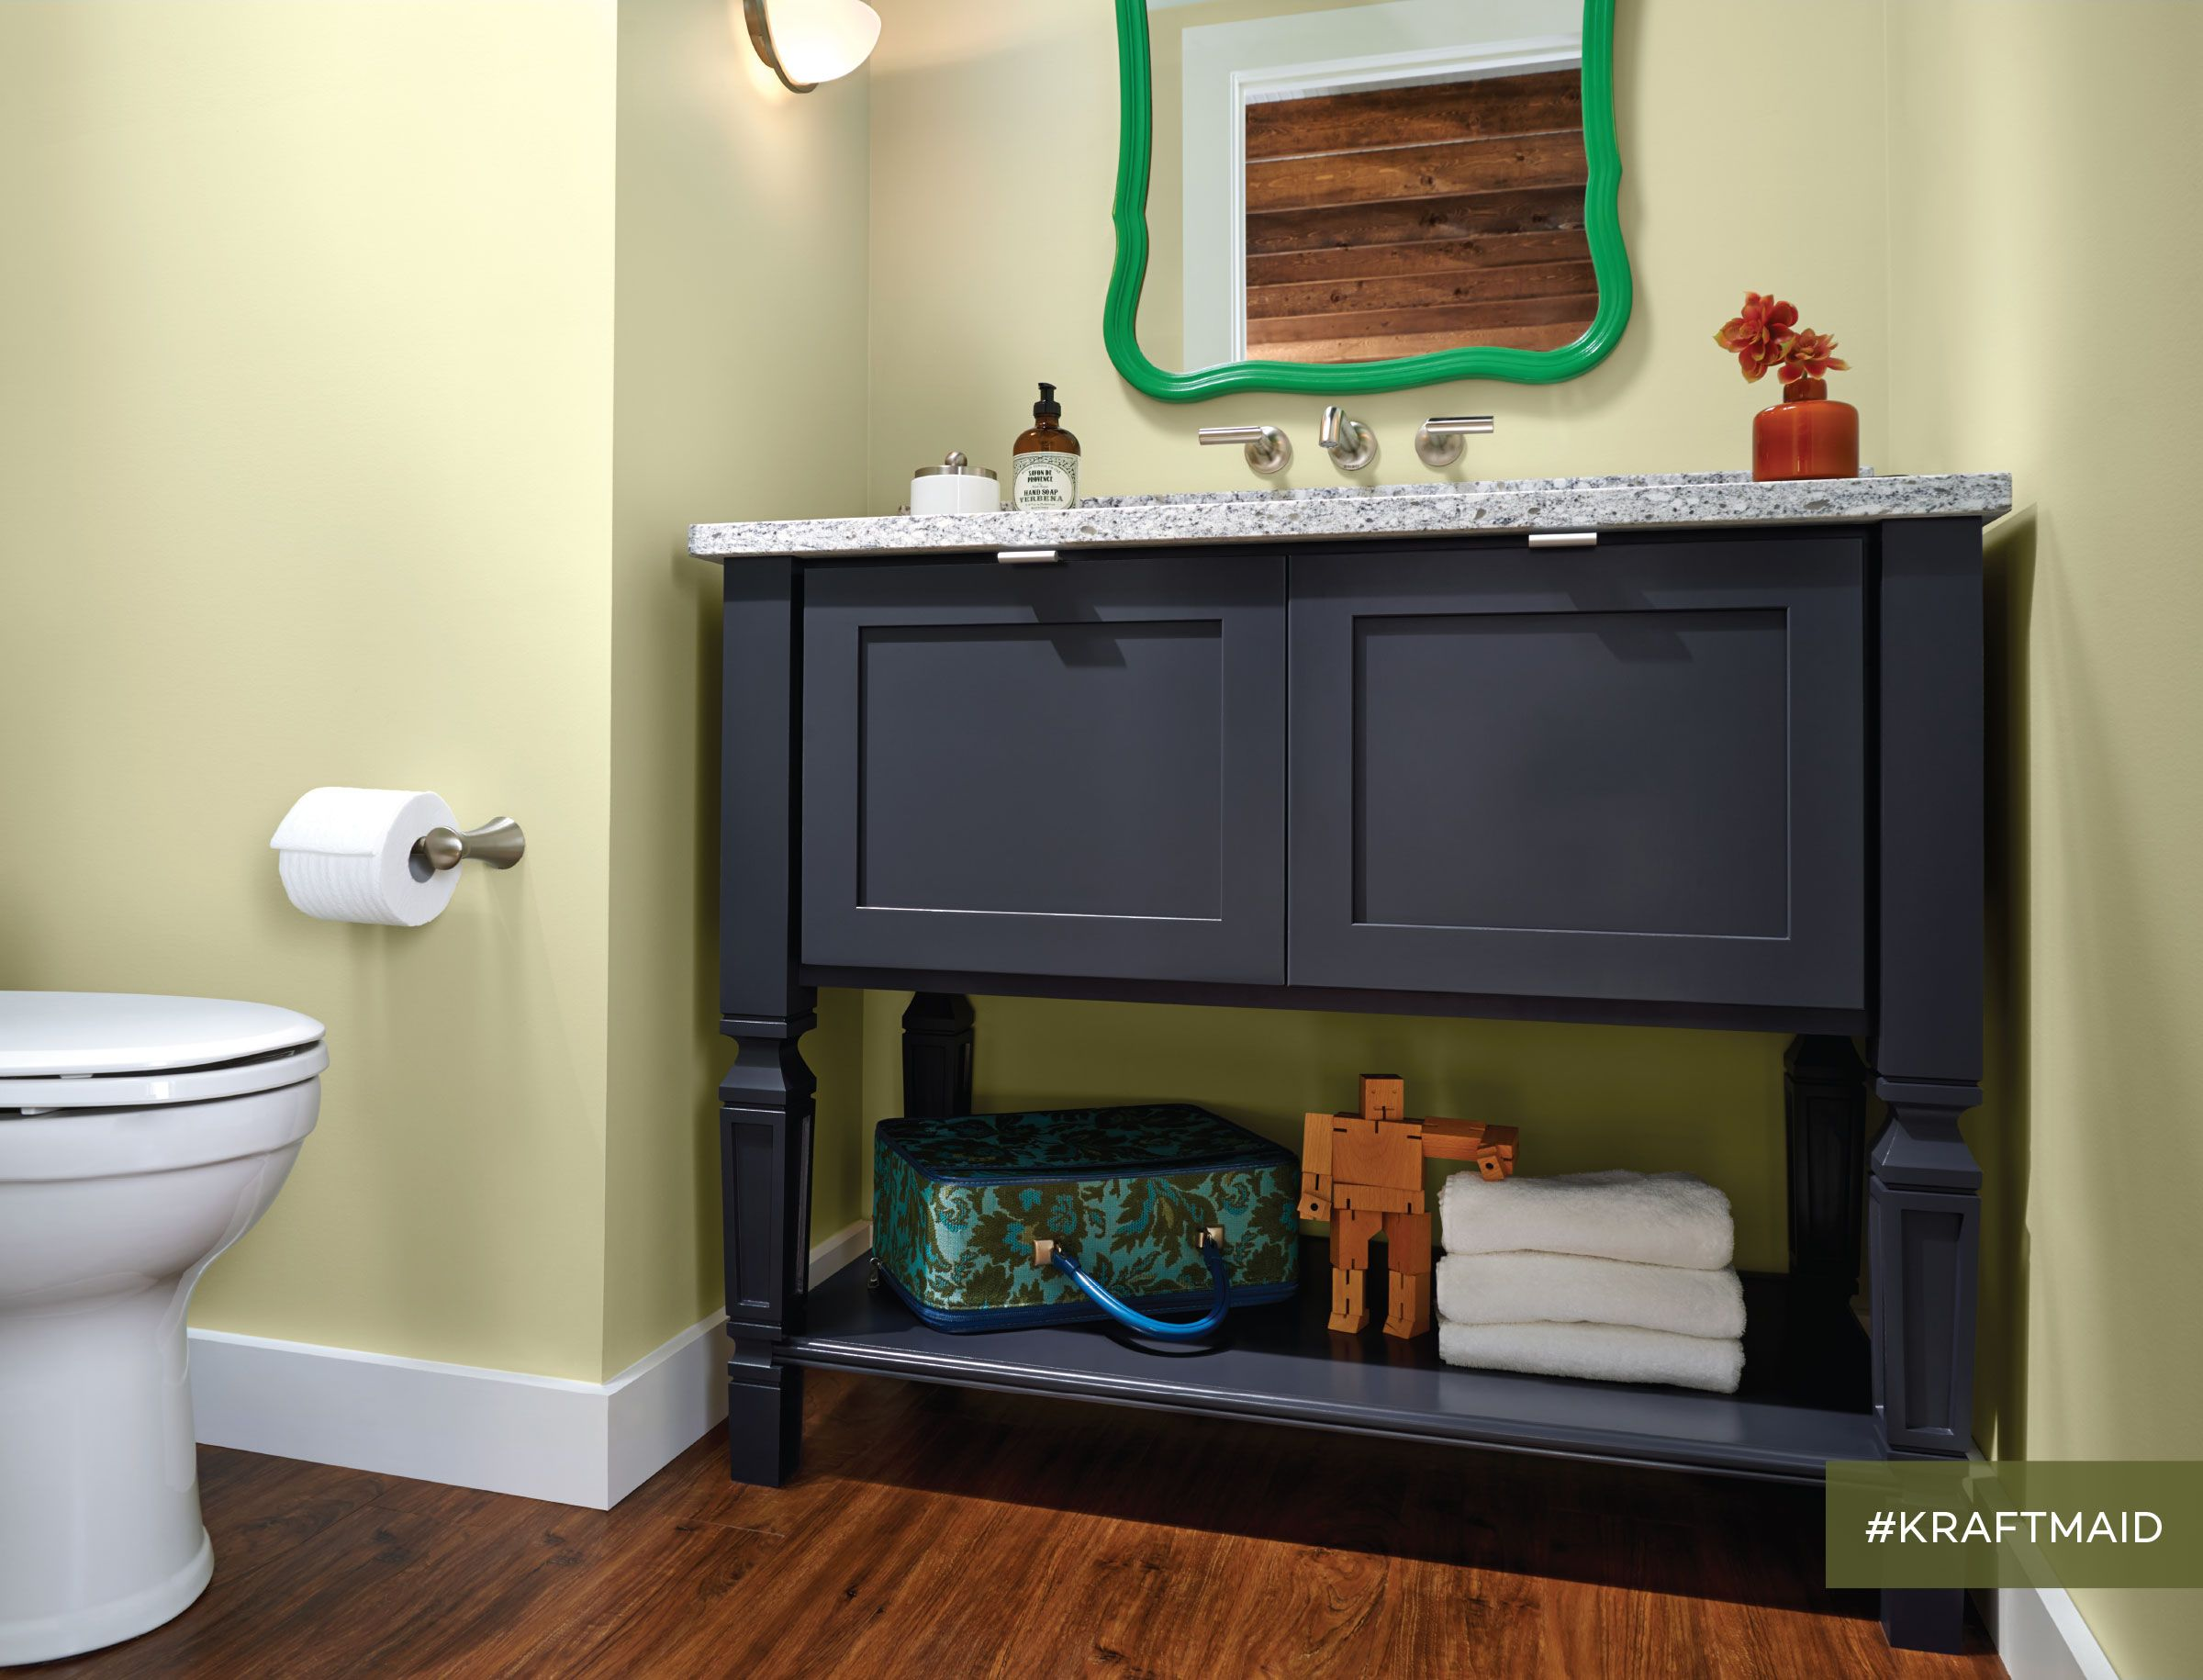 KraftMaidu0027s Console Vanity For The Bathroom Looks Like Furniture And Can Be  Personalized With Your Choice Of Door Styles, Finishes And One Of Five Leg  ...